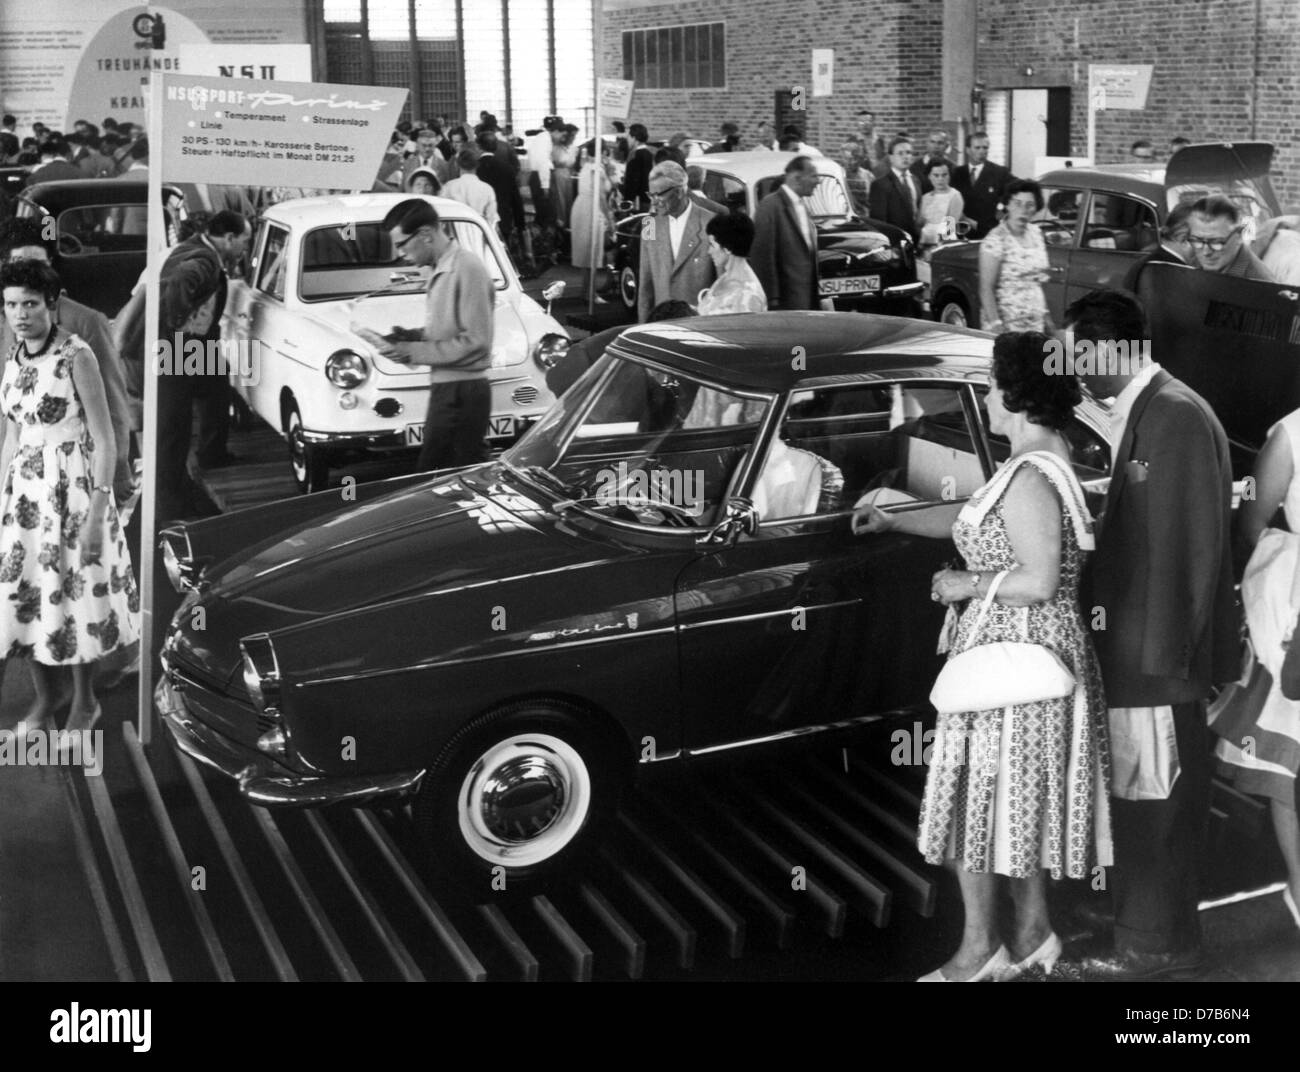 Visitors of the German Industrial Exhibition in September 1959 in Berlin. Stock Photo